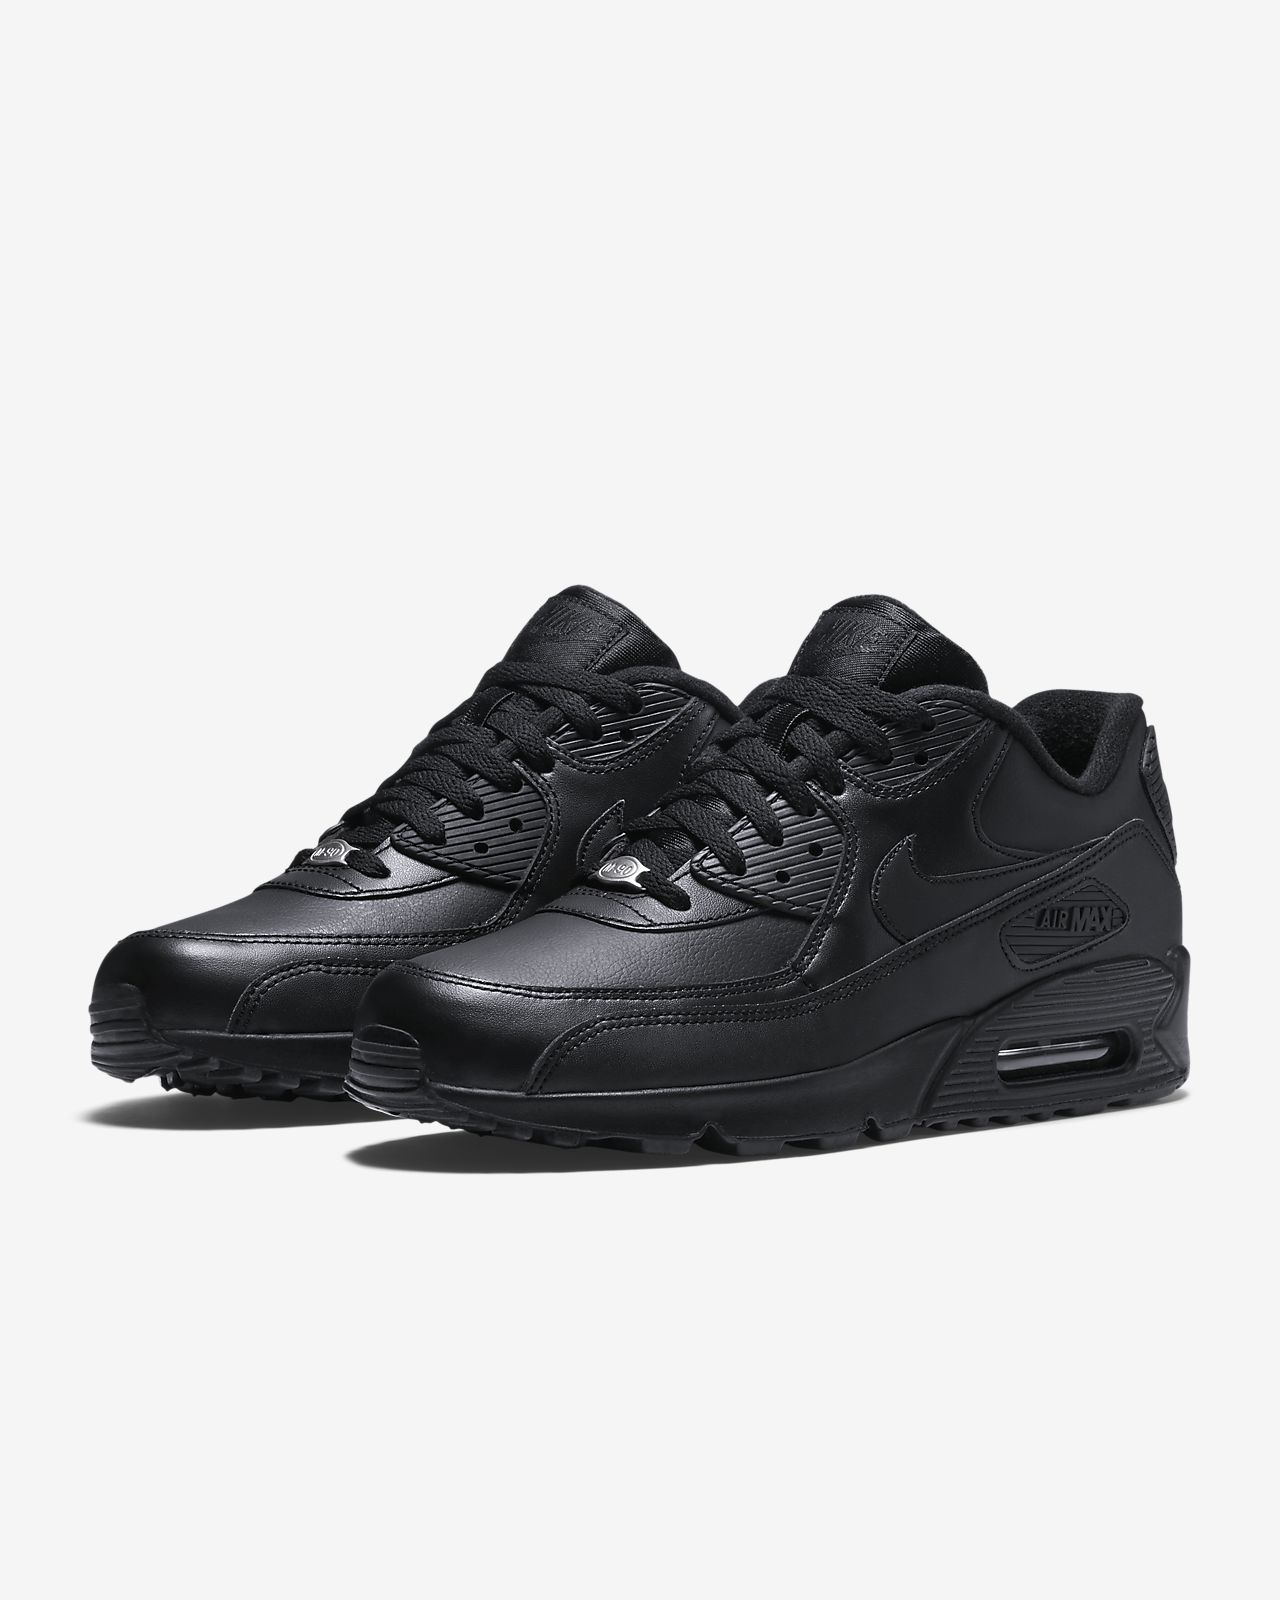 1794ea05ce92 Nike Air Max 90 Leather Men s Shoe. Nike.com GB